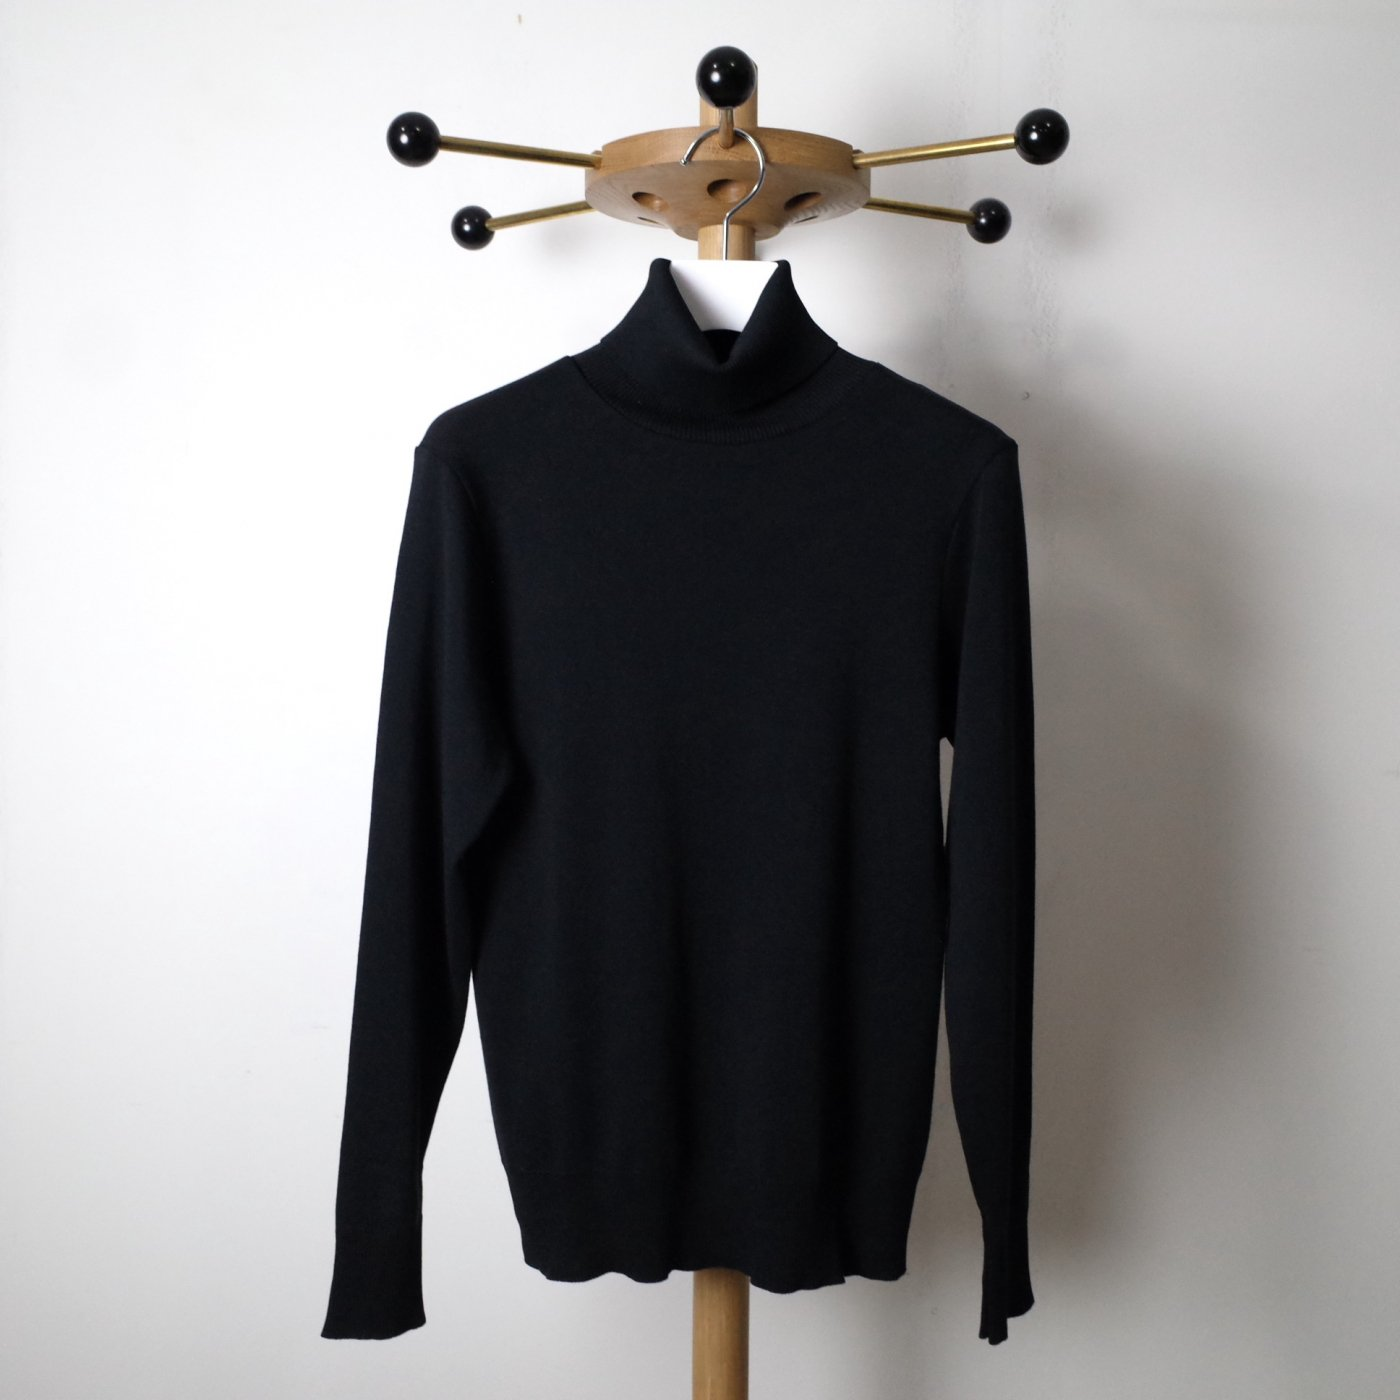 <img class='new_mark_img1' src='//img.shop-pro.jp/img/new/icons5.gif' style='border:none;display:inline;margin:0px;padding:0px;width:auto;' />gicipi ジチピ-	TURTLENECK TOPS-ANANAS-BLACK-